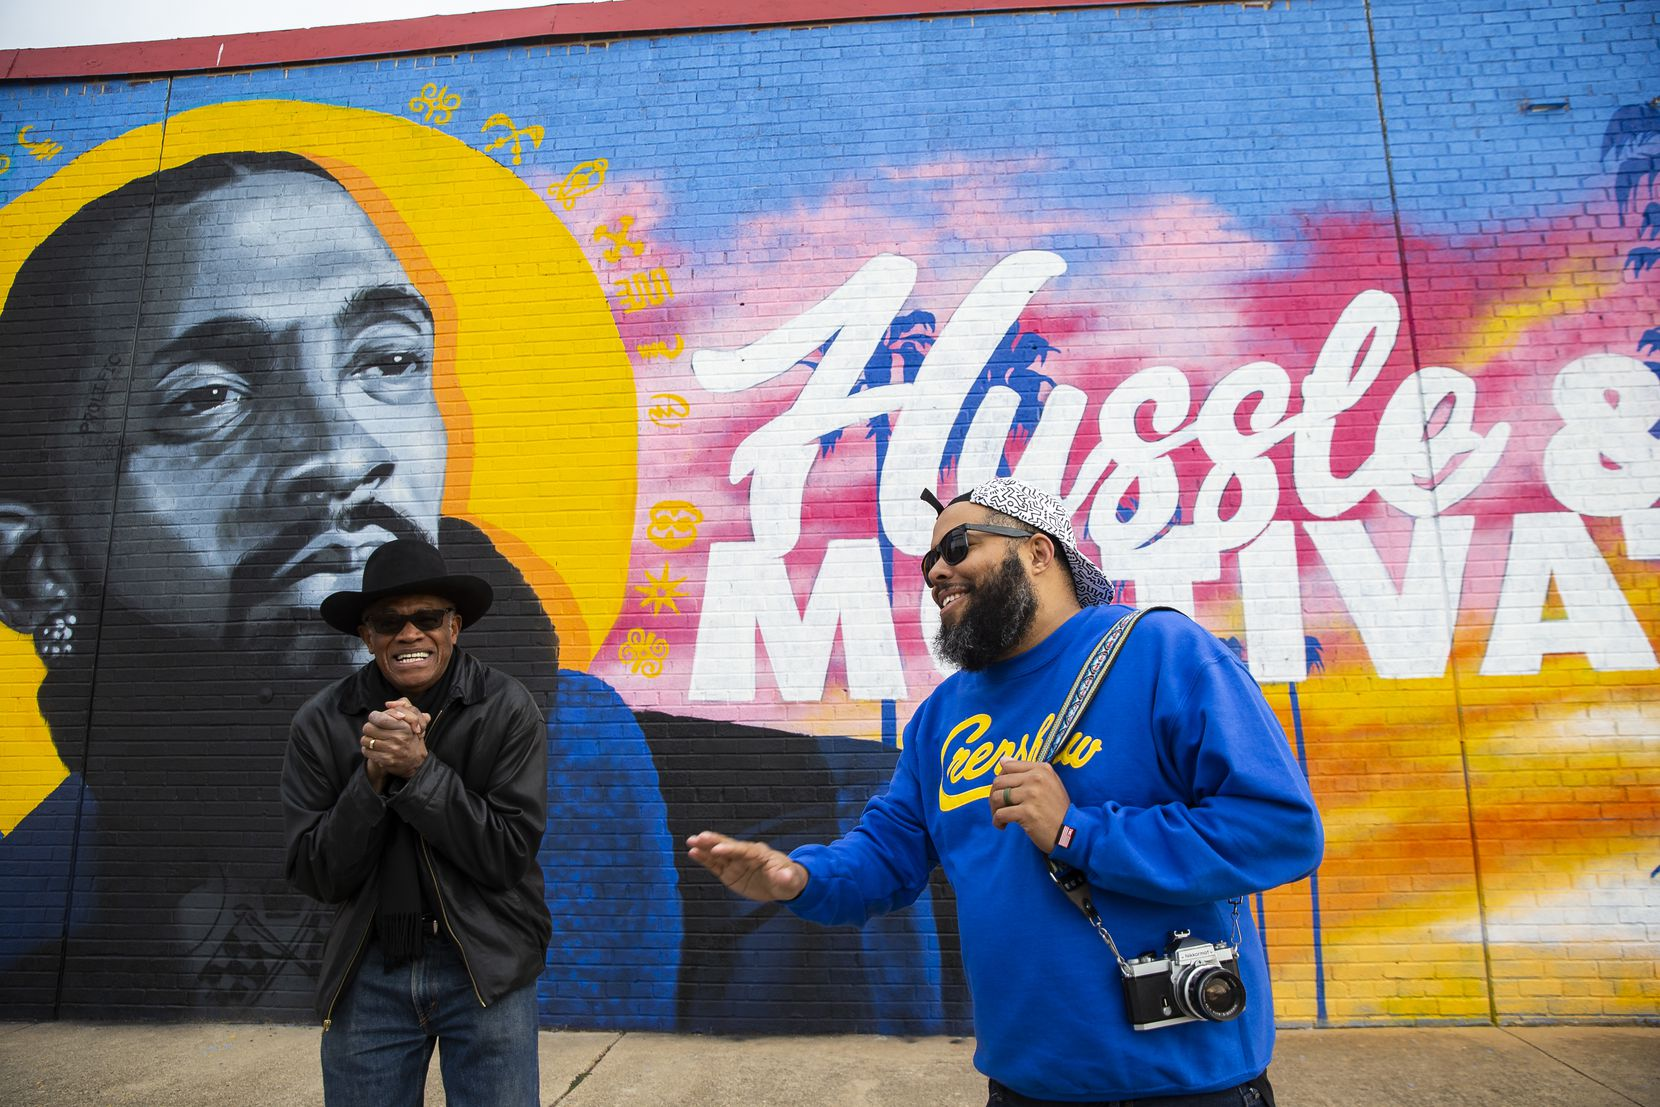 Glendale Shopping Center owner Al Herron (left) shares a laugh while talking to artist Jeremy Biggers in front of his mural dedicated to the late rapper, entrepreneur and community activist Nipsey Hussle at the Glendale Shopping Center on Feb. 22, 2020 in Dallas.